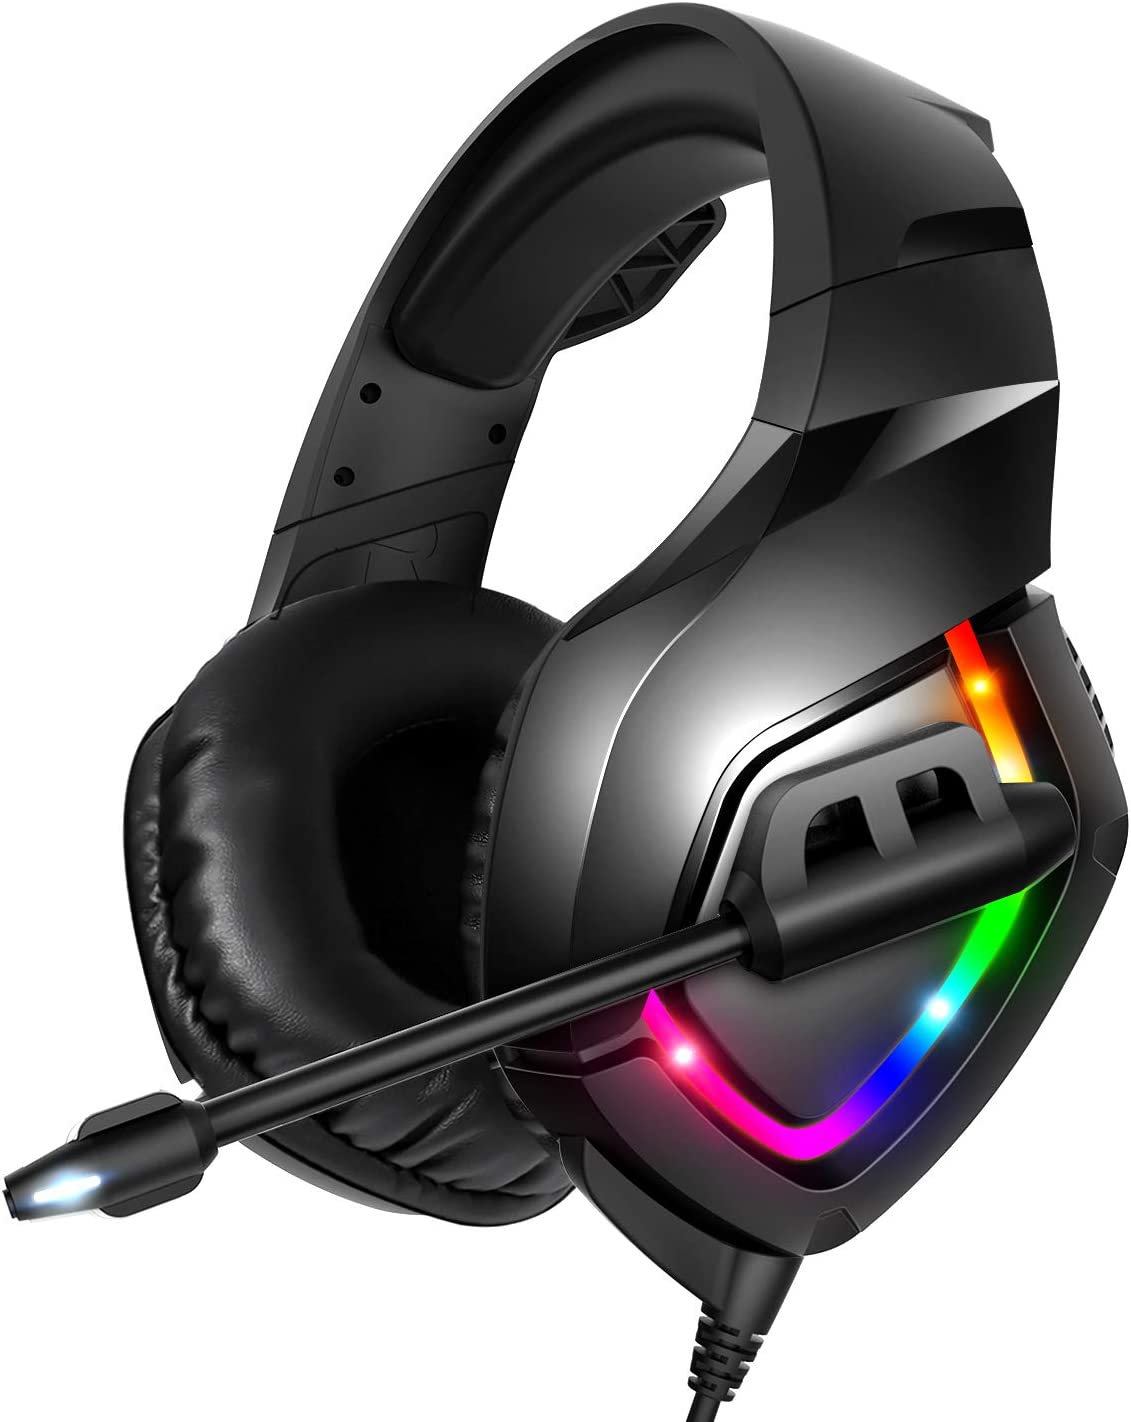 BEST USB HEADSETS FOR GAMING